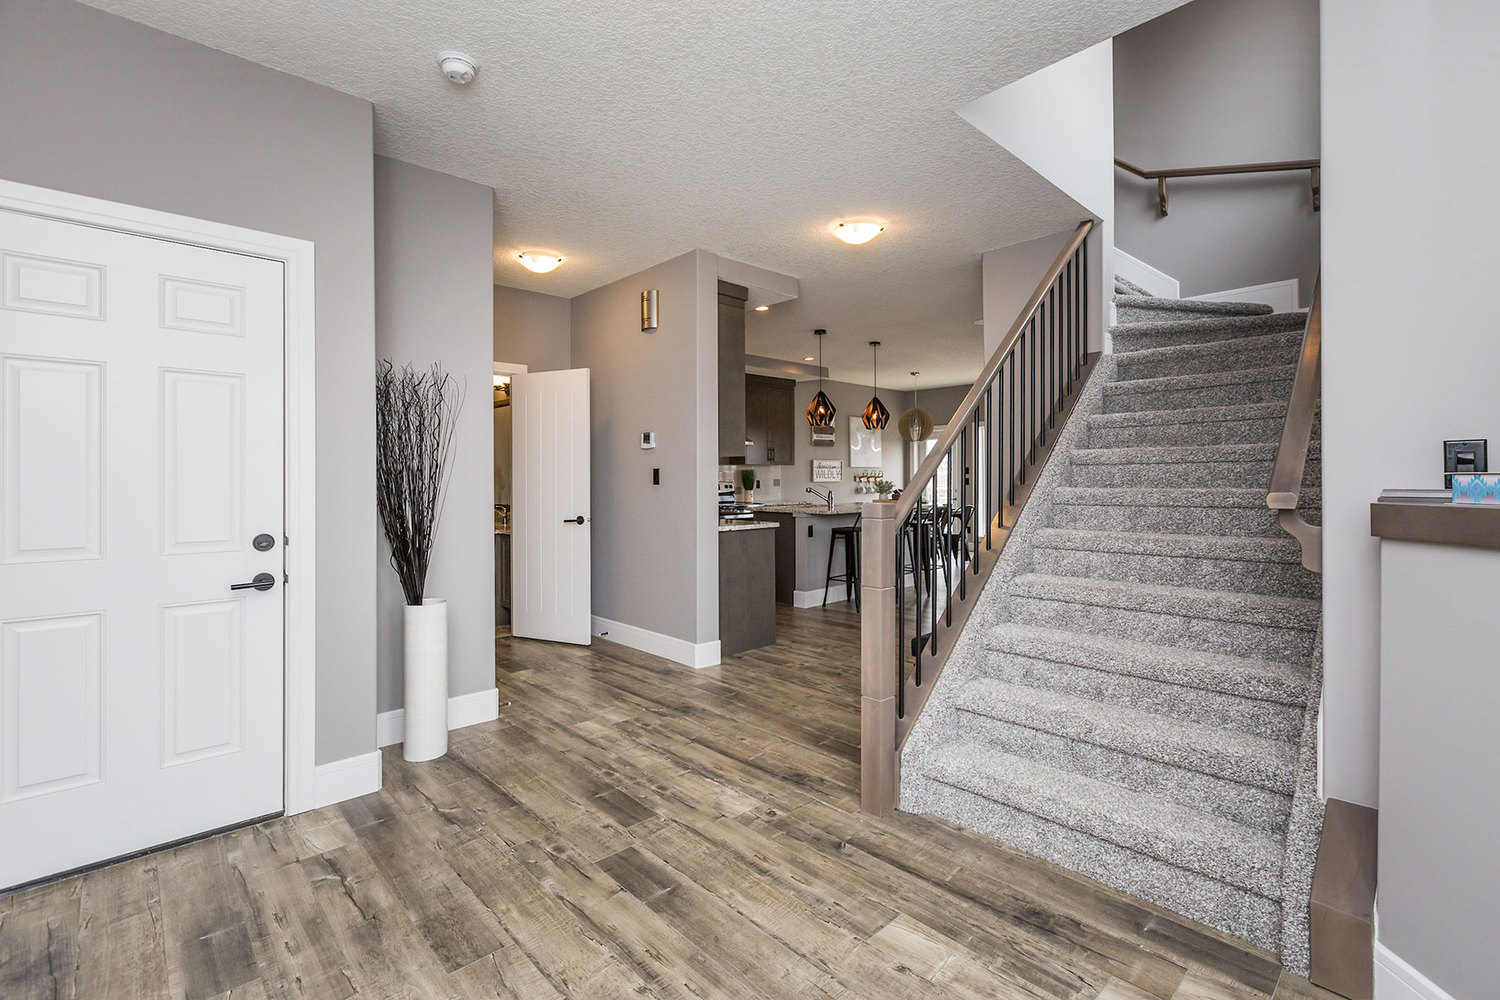 596_504_property_zmain-floor-4-20190103040133.jpg